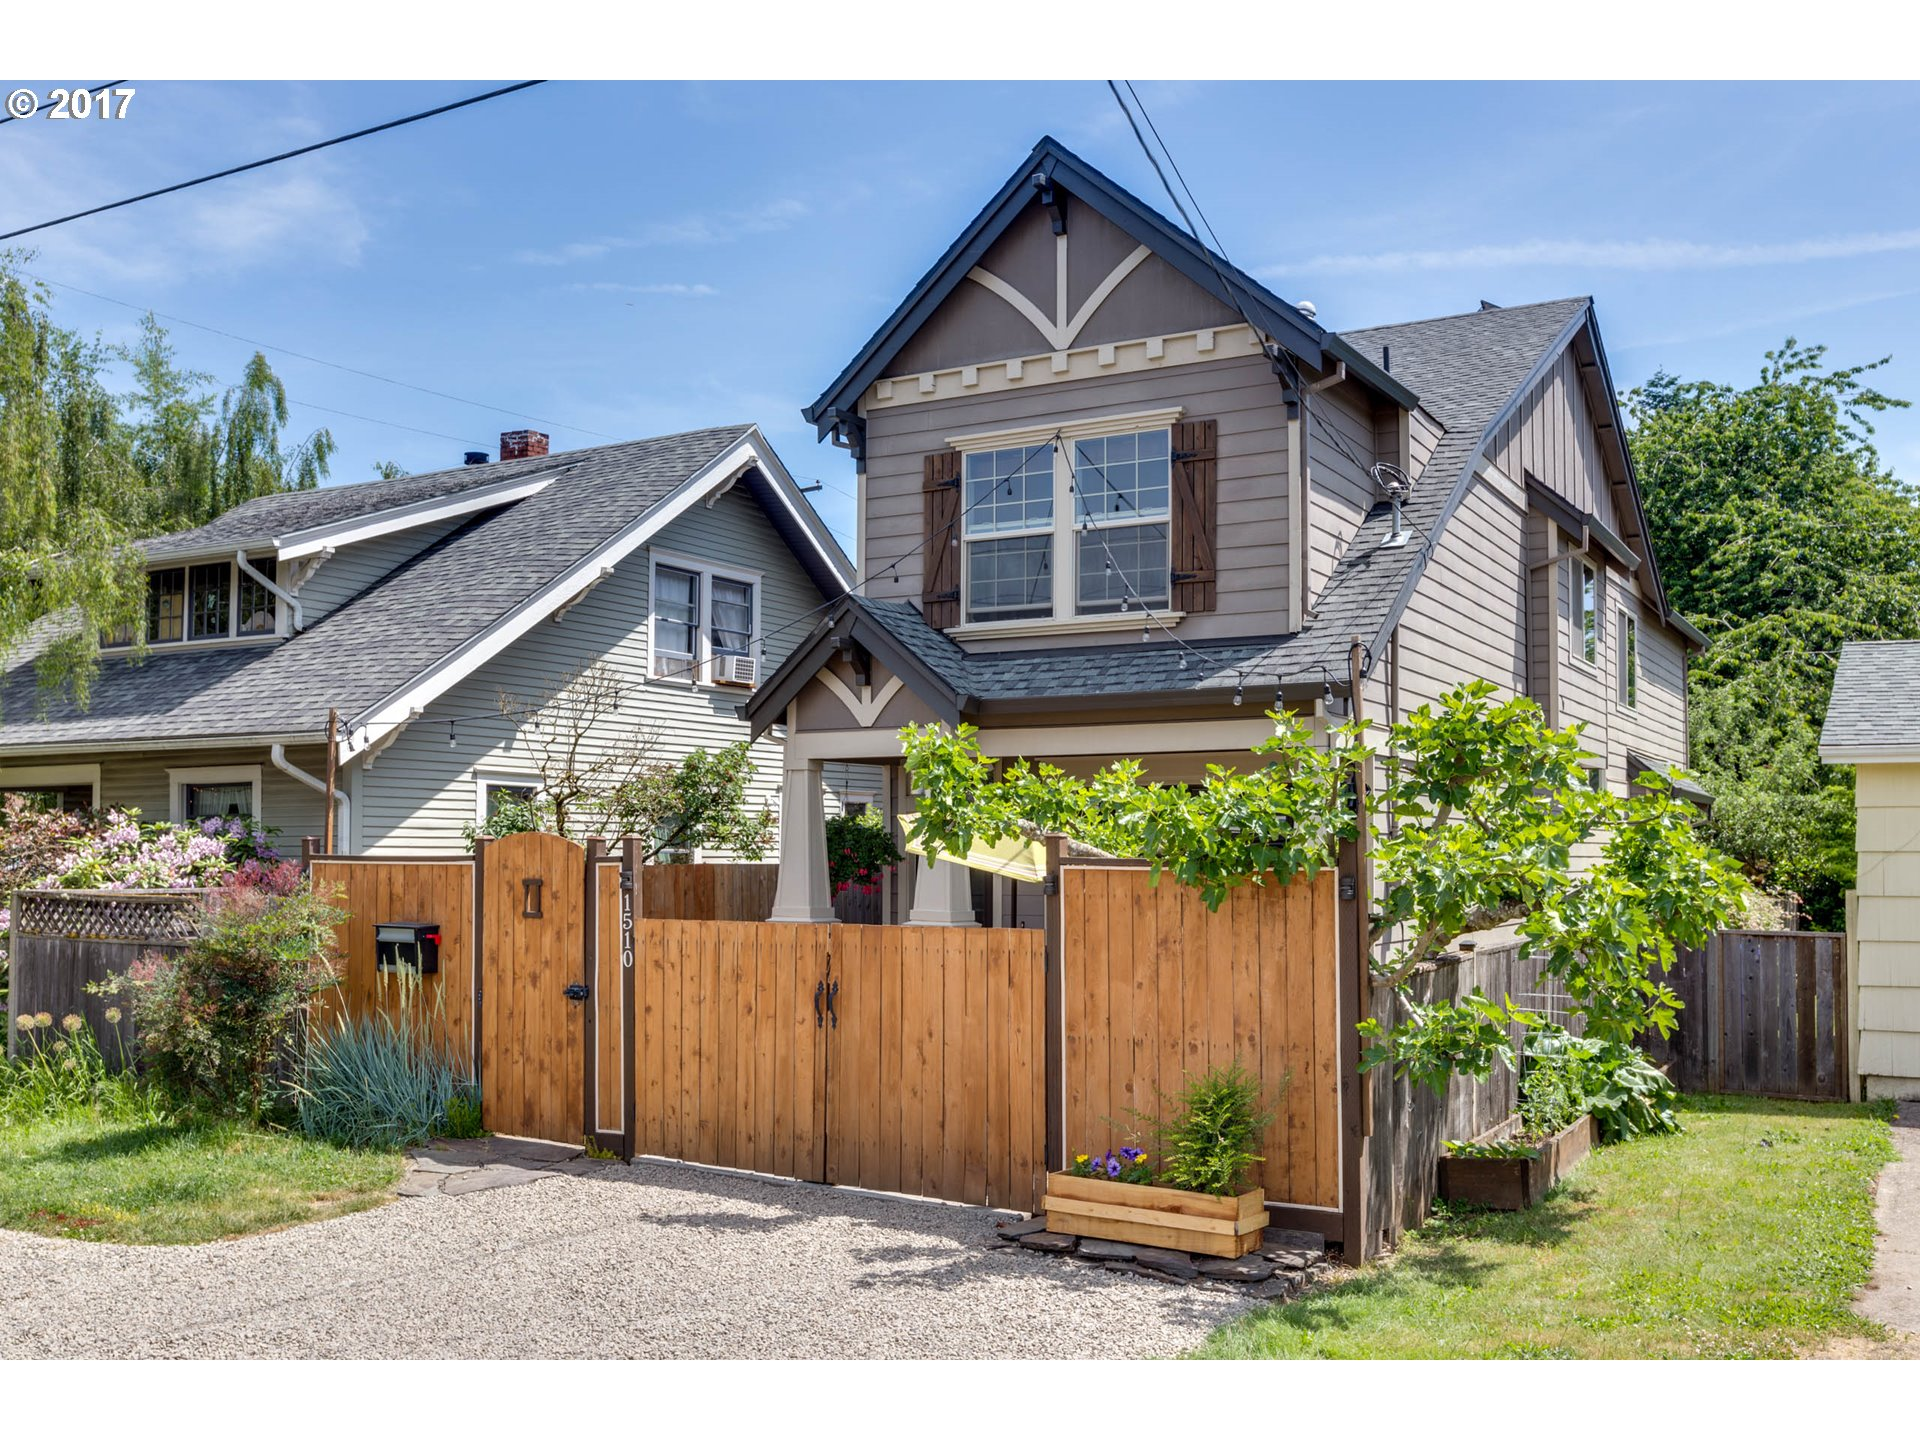 1510 SE 88TH AVE Portland, OR 97216 - MLS #: 17698320